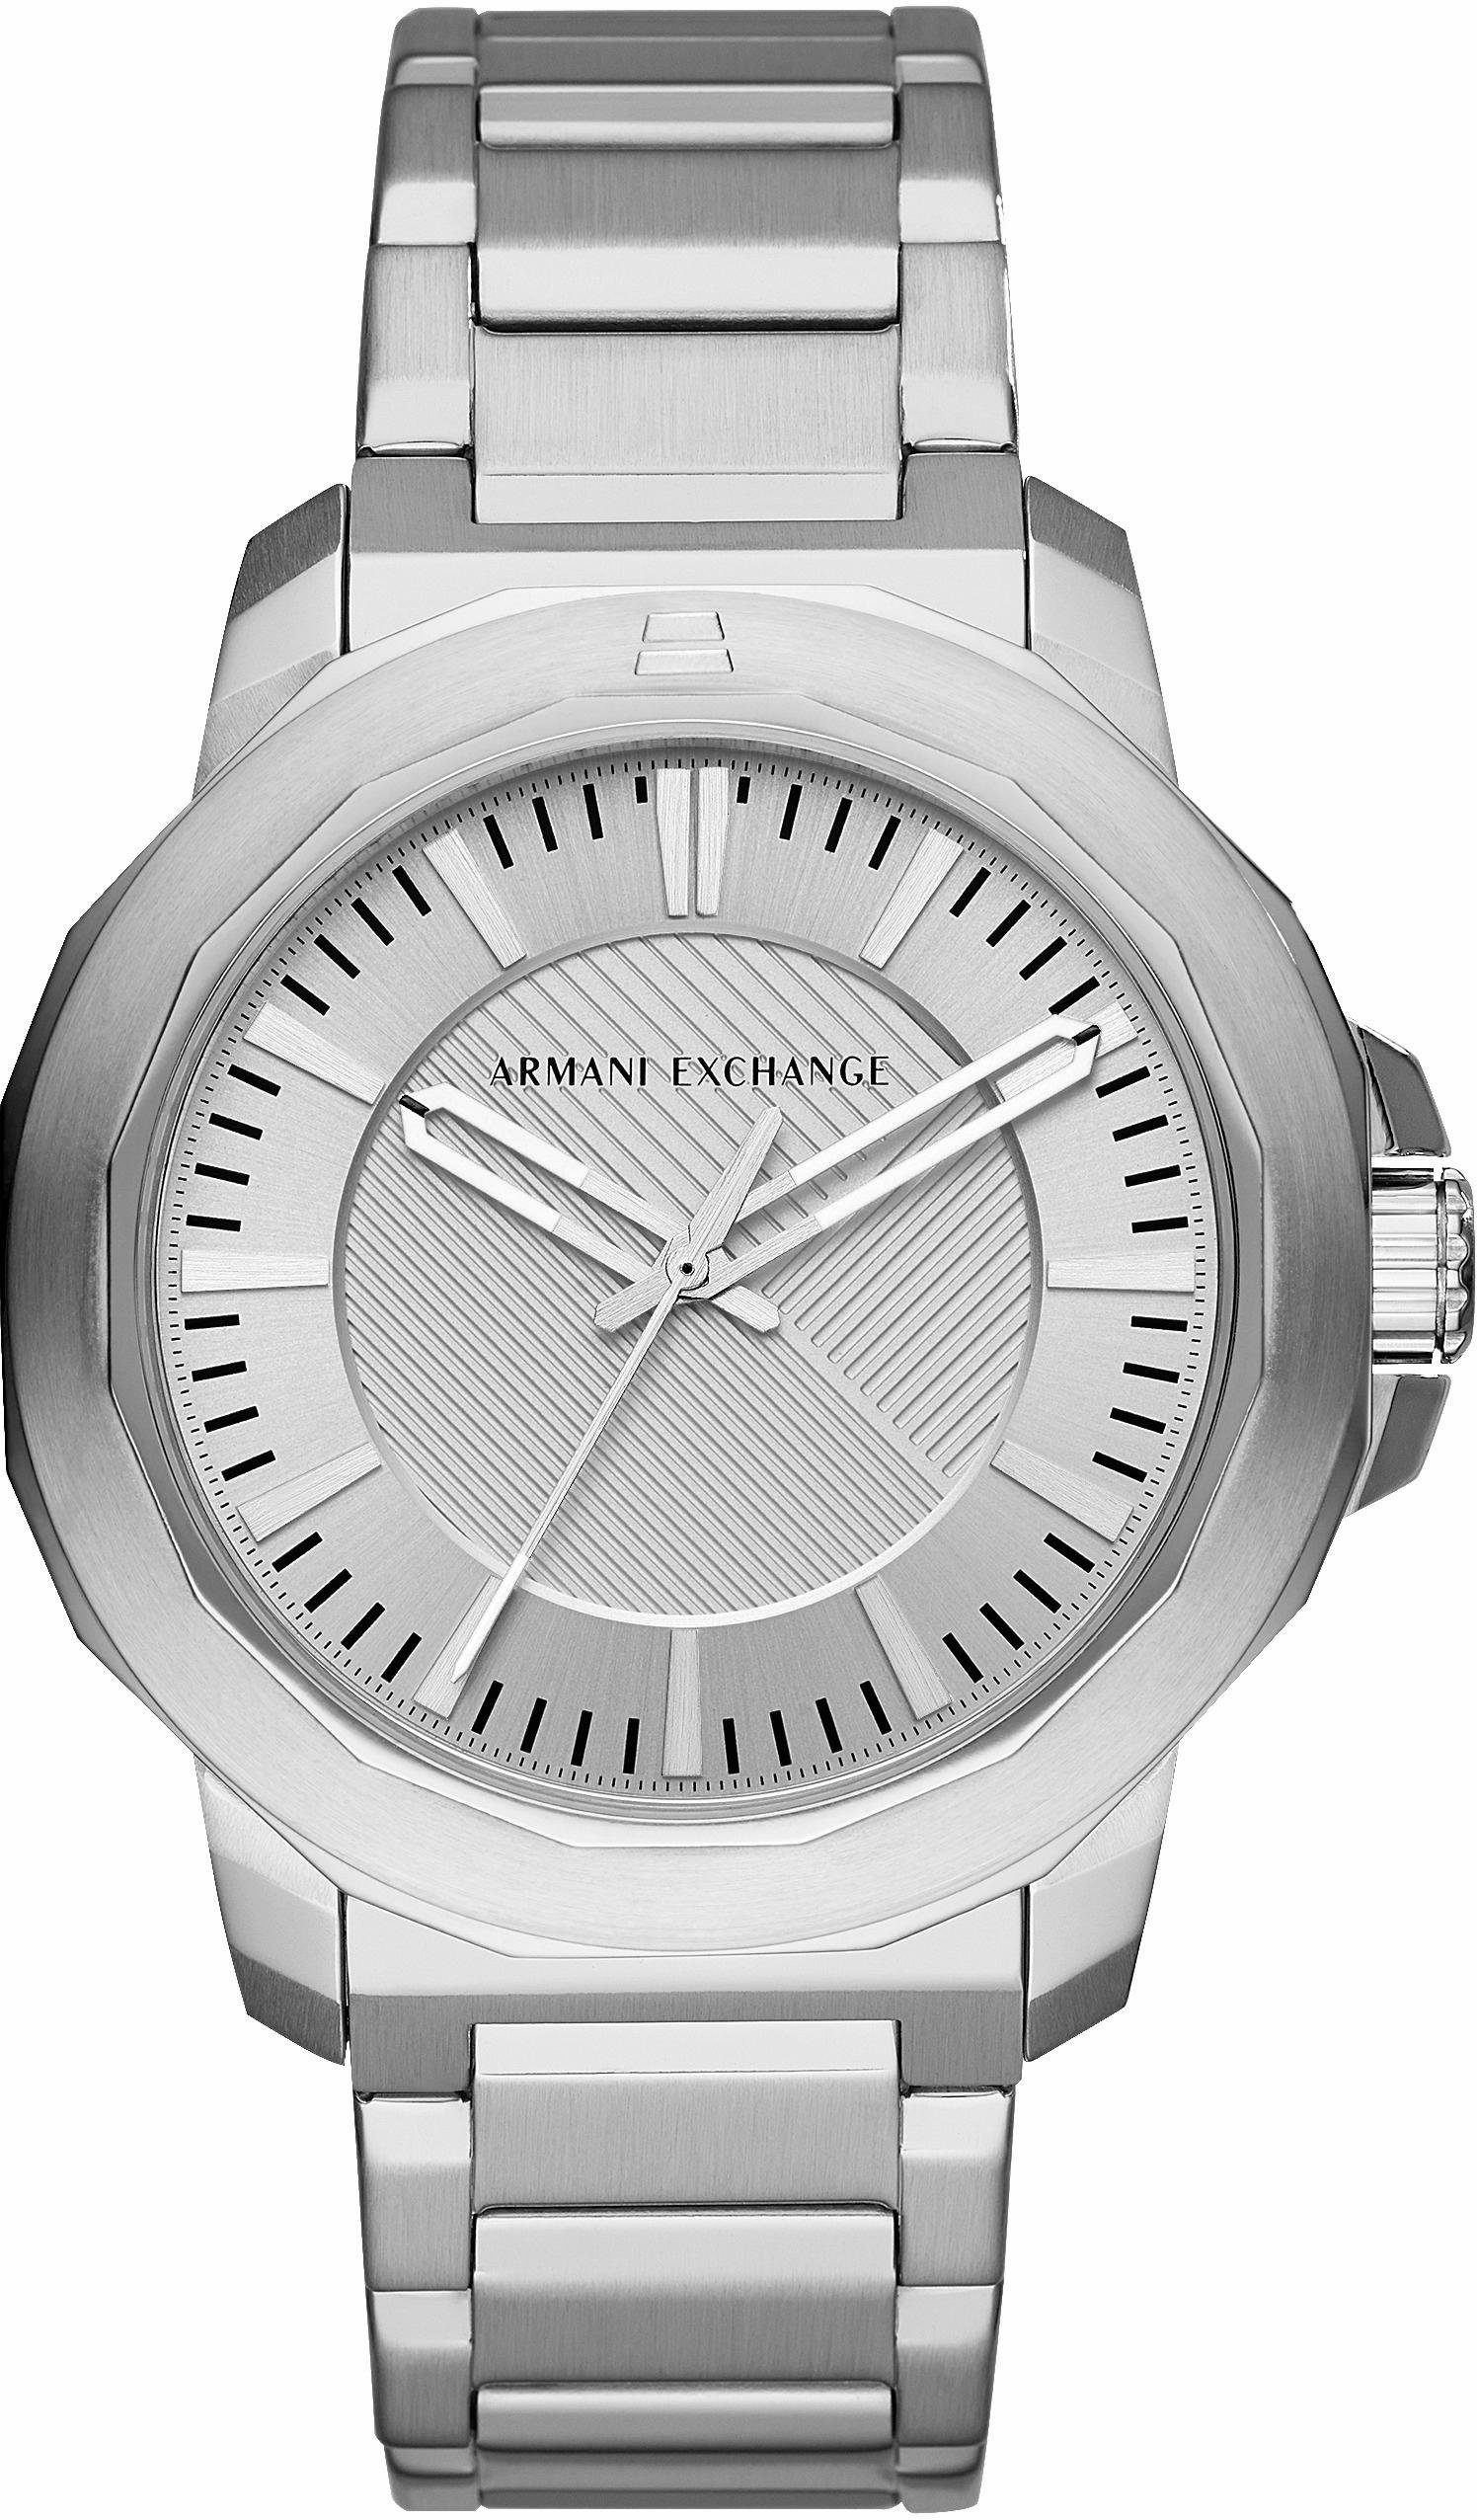 ARMANI EXCHANGE Quarzuhr »AX1900«